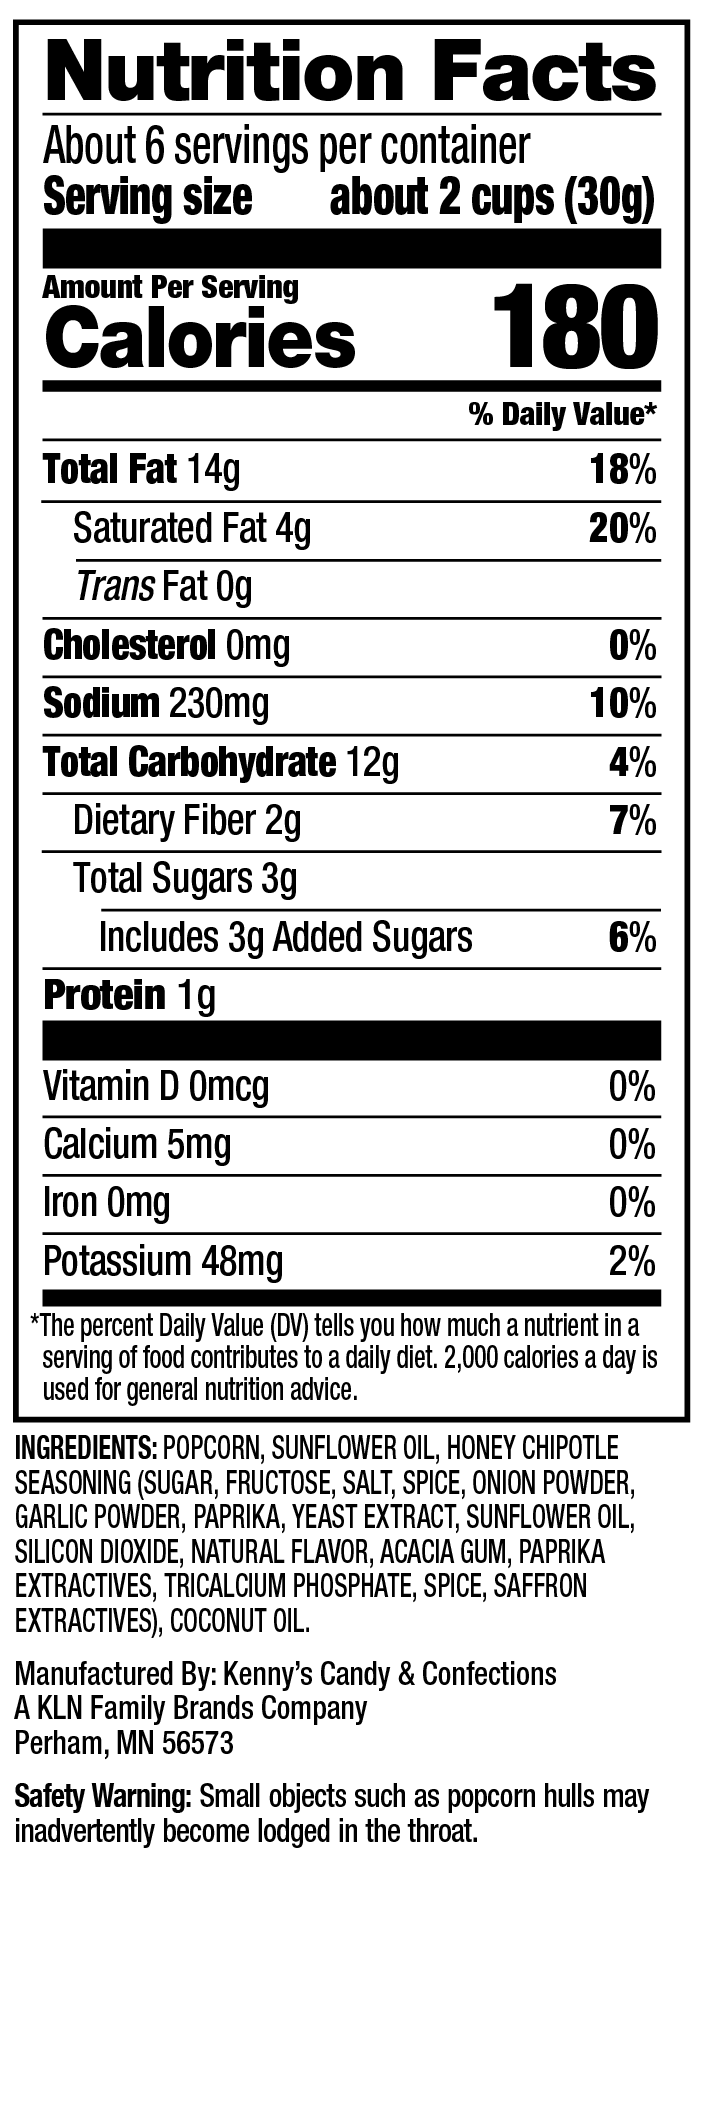 Nutrition Facts - Sweet Chaos Honey Chipotle Popcorn